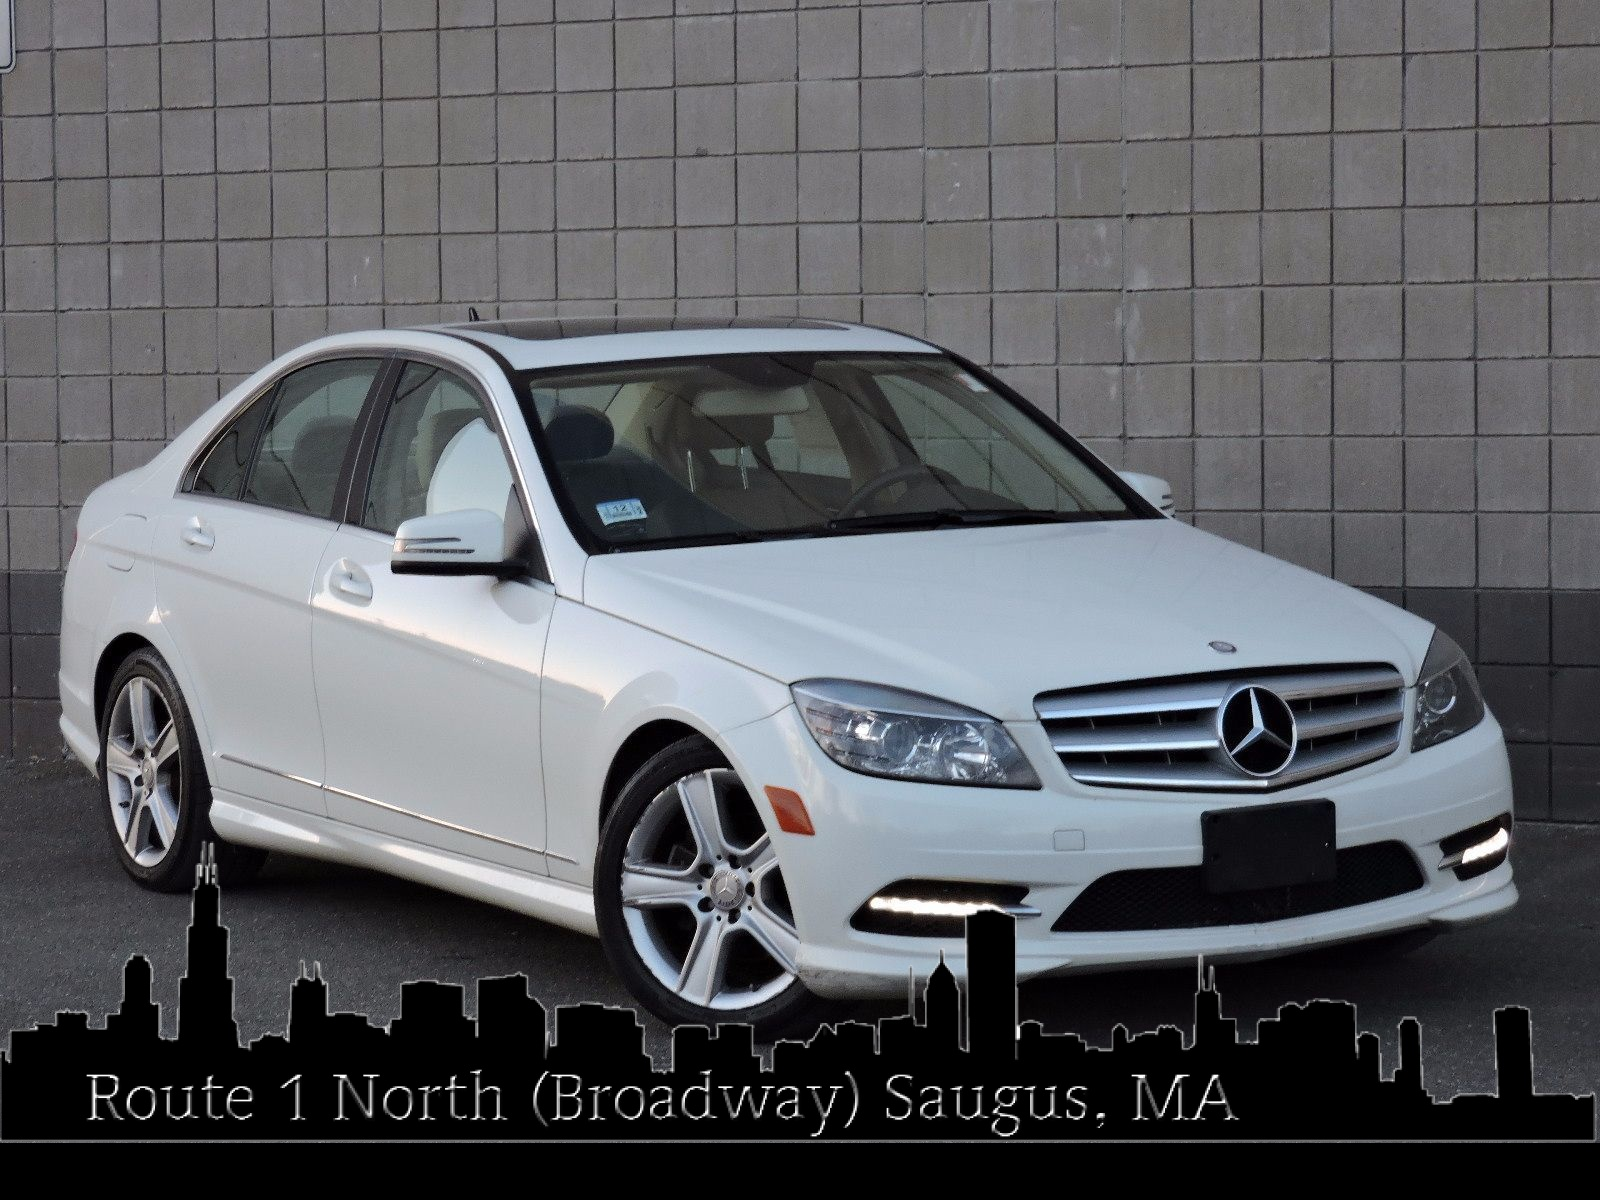 used 2011 mercedes benz c300 c300 sport at auto house usa saugus. Black Bedroom Furniture Sets. Home Design Ideas